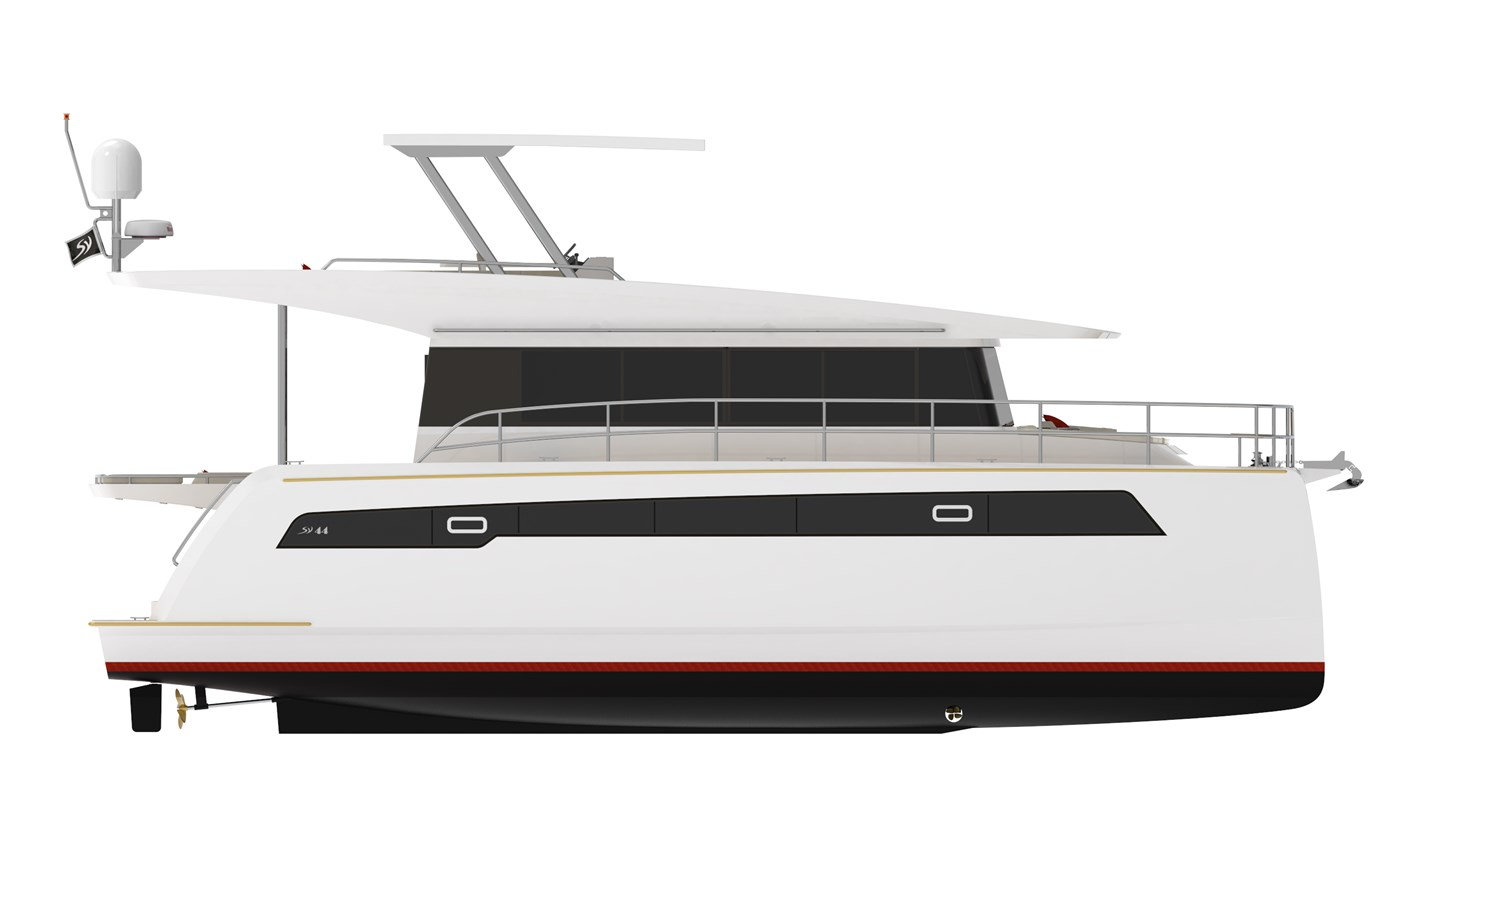 Electric Yachts Silent Yachts 44 Side 2020 SILENT YACHTS SILENT 44 Catamaran 2771192